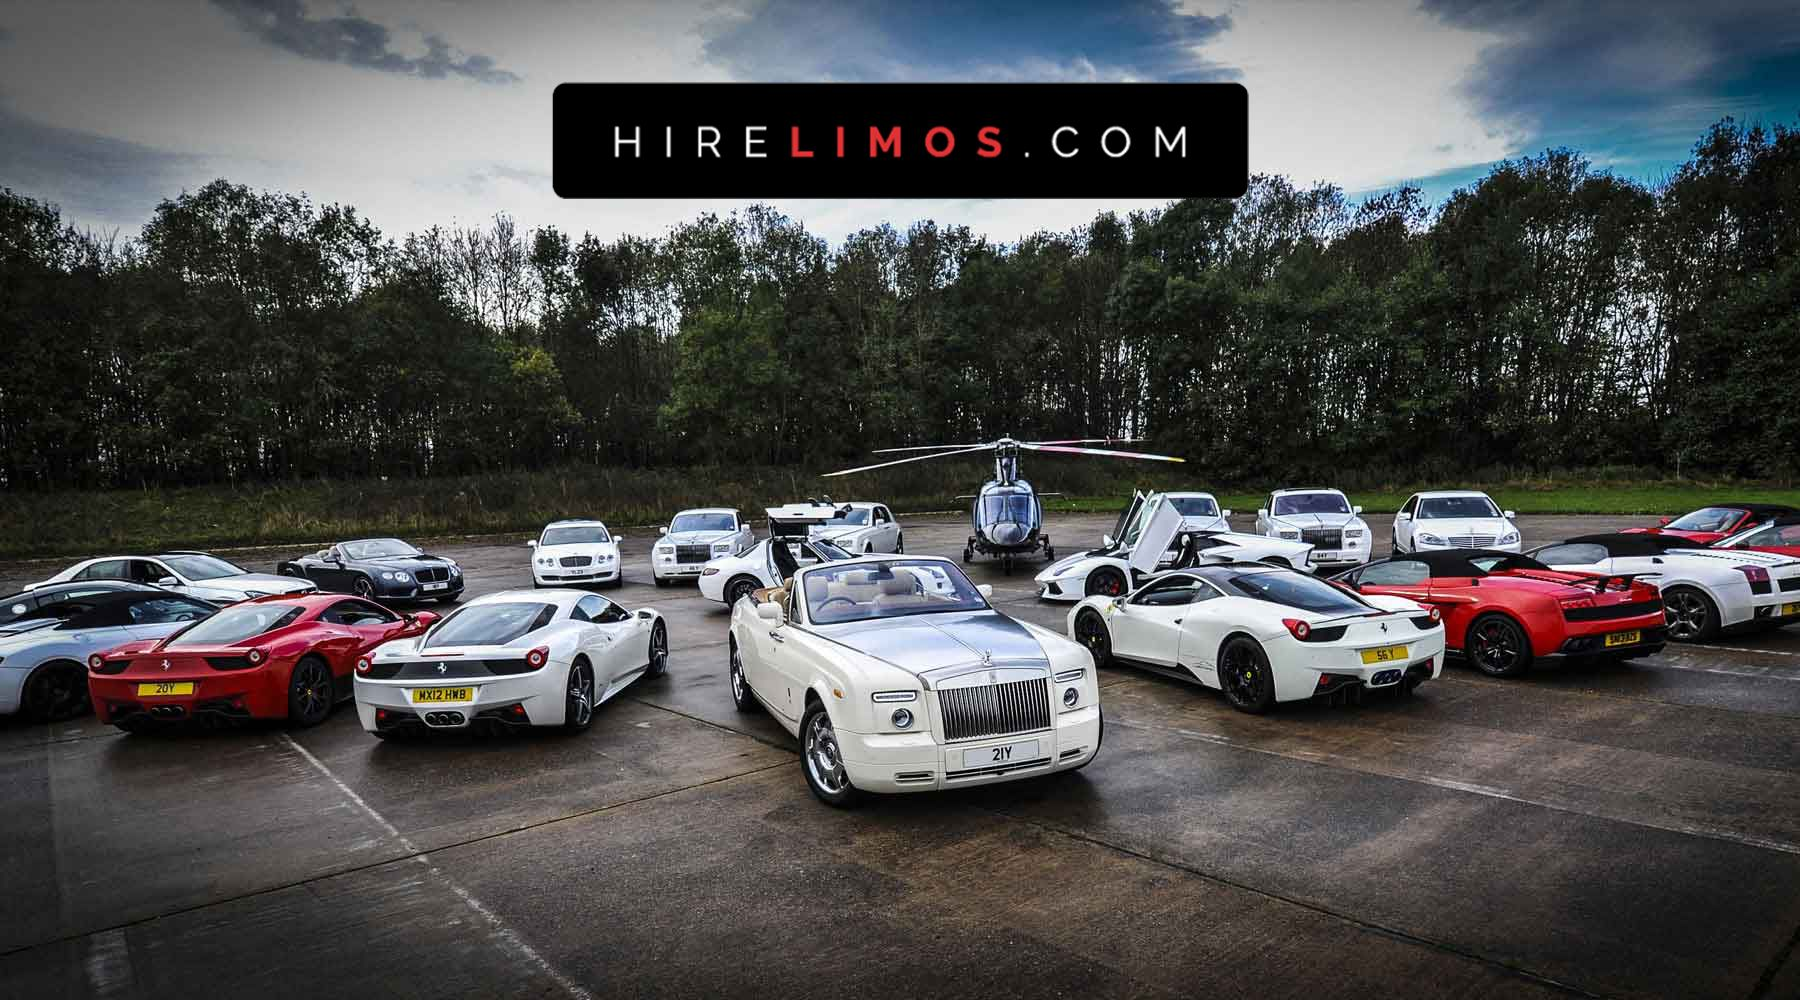 Limo Hire price anywhere in the UK. From classic American